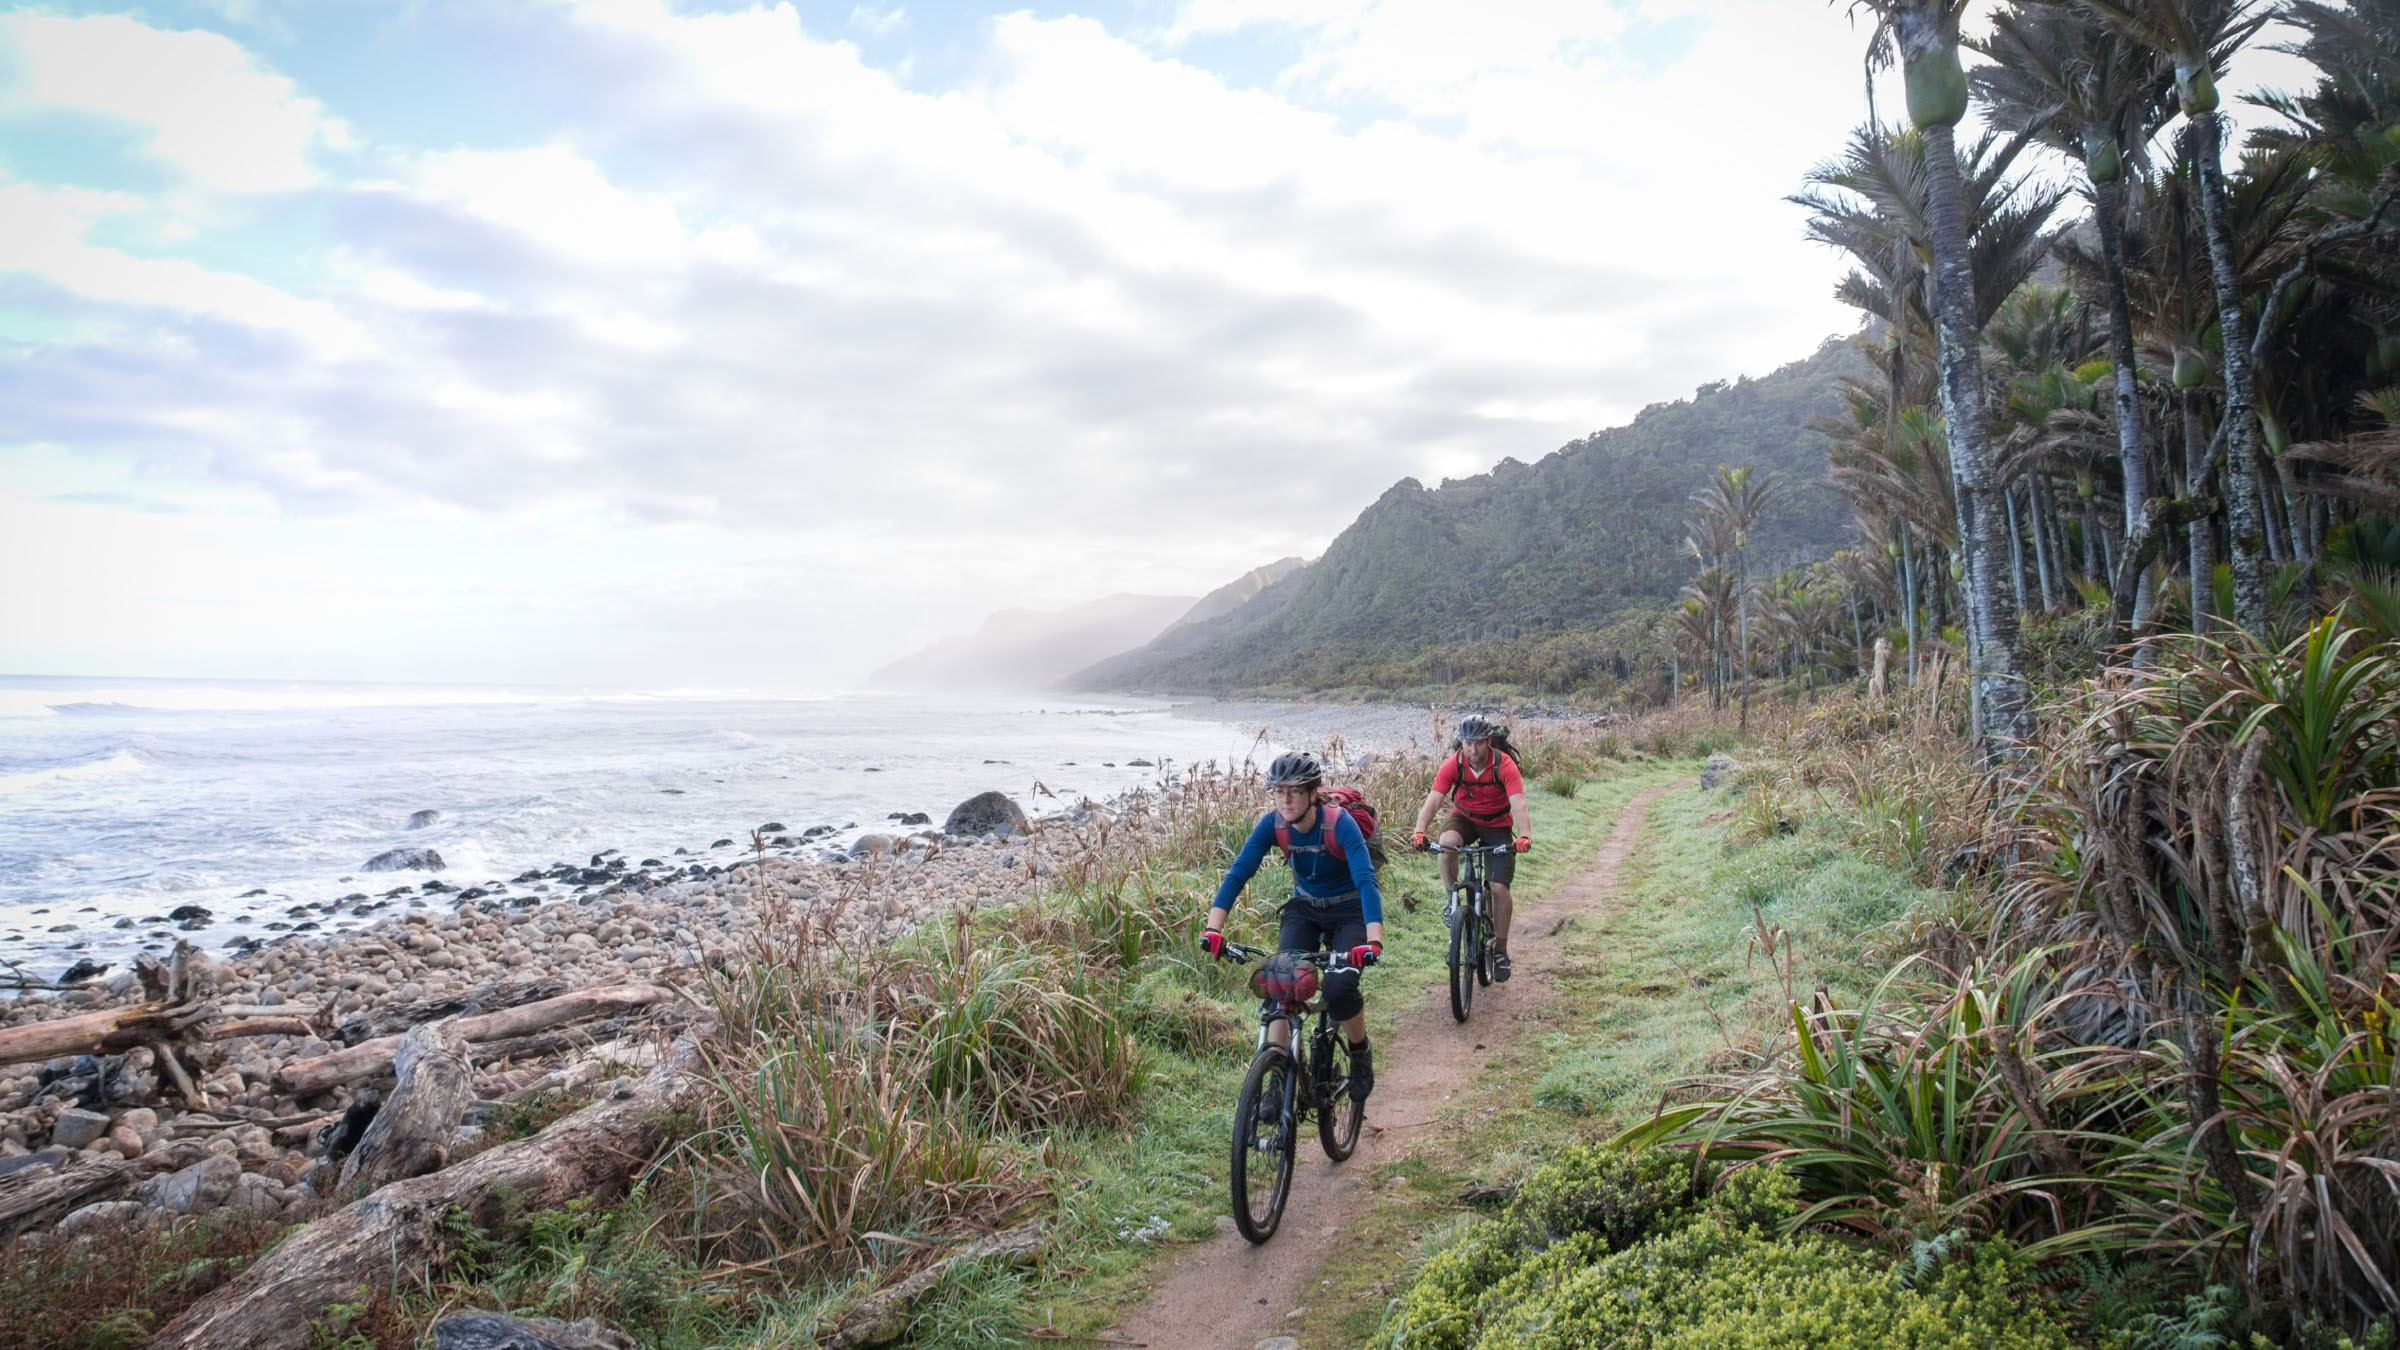 Mountain bikes are permitted on New Zealand's Heaphy Track for some of the year